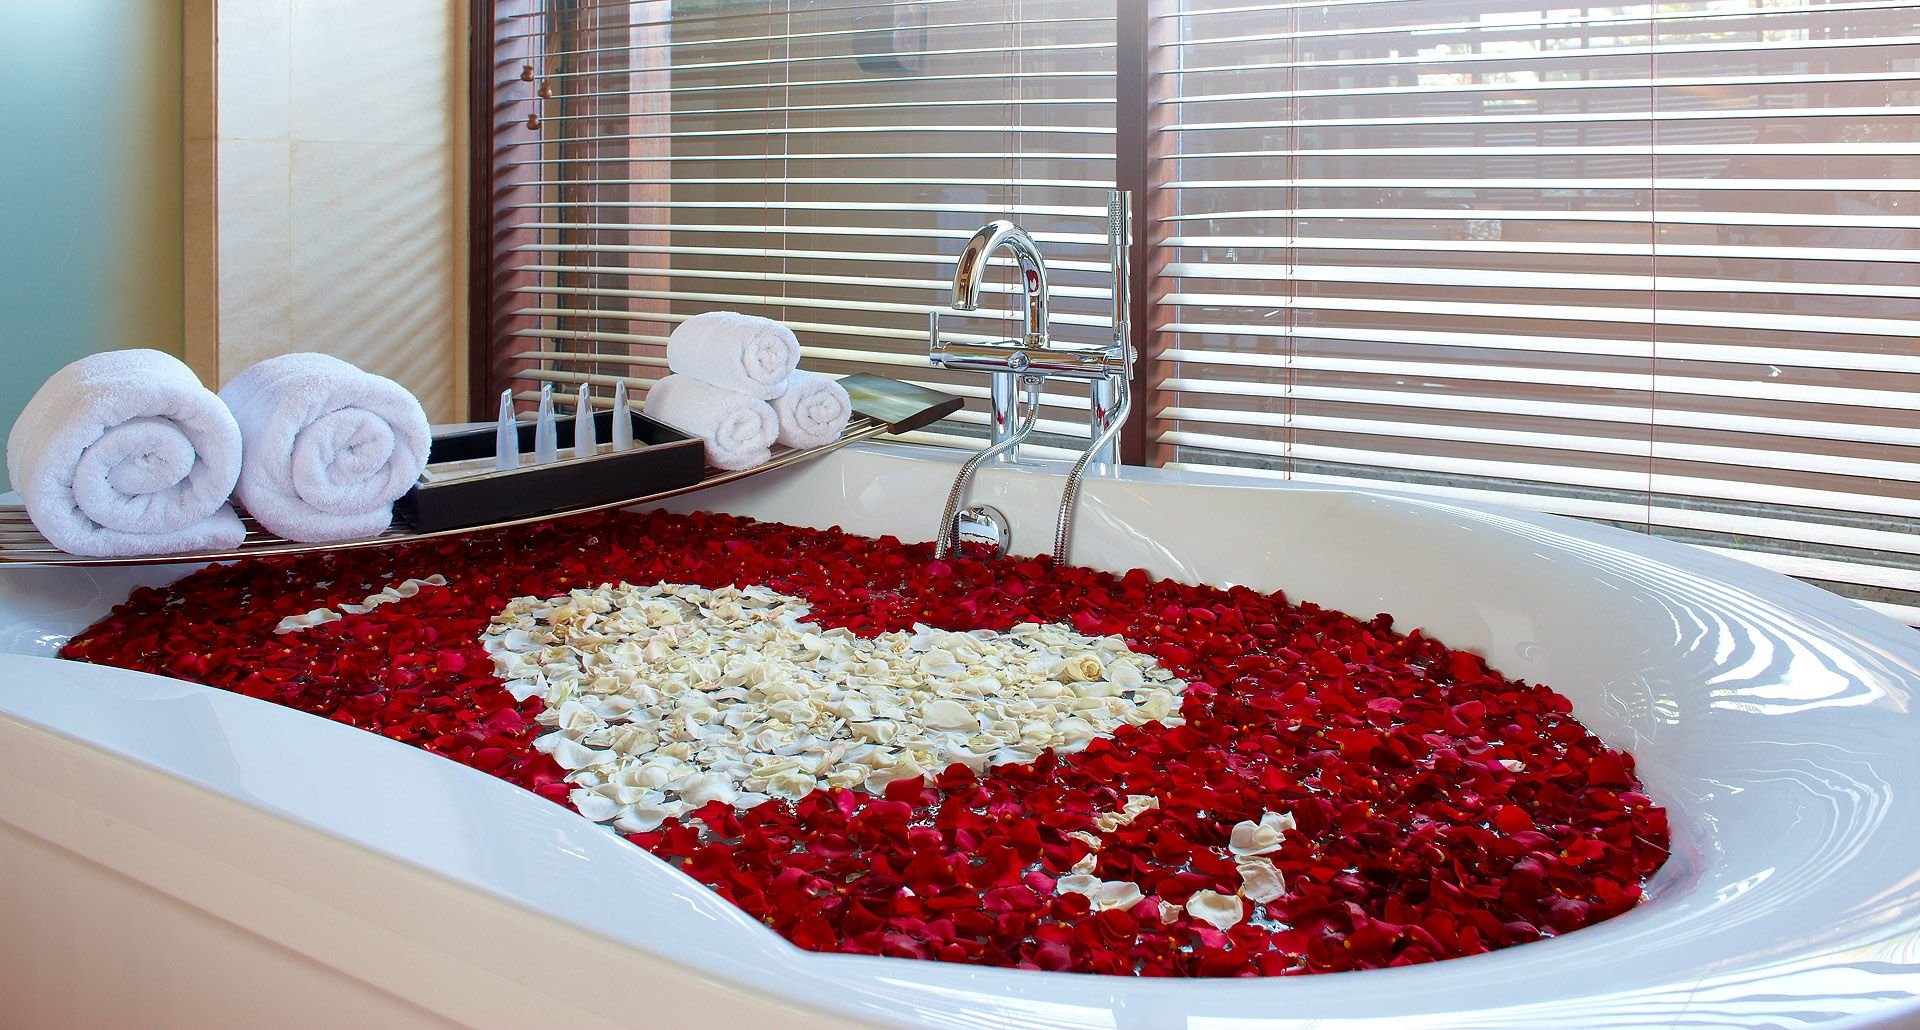 Romantic Bathtub Honeymoon